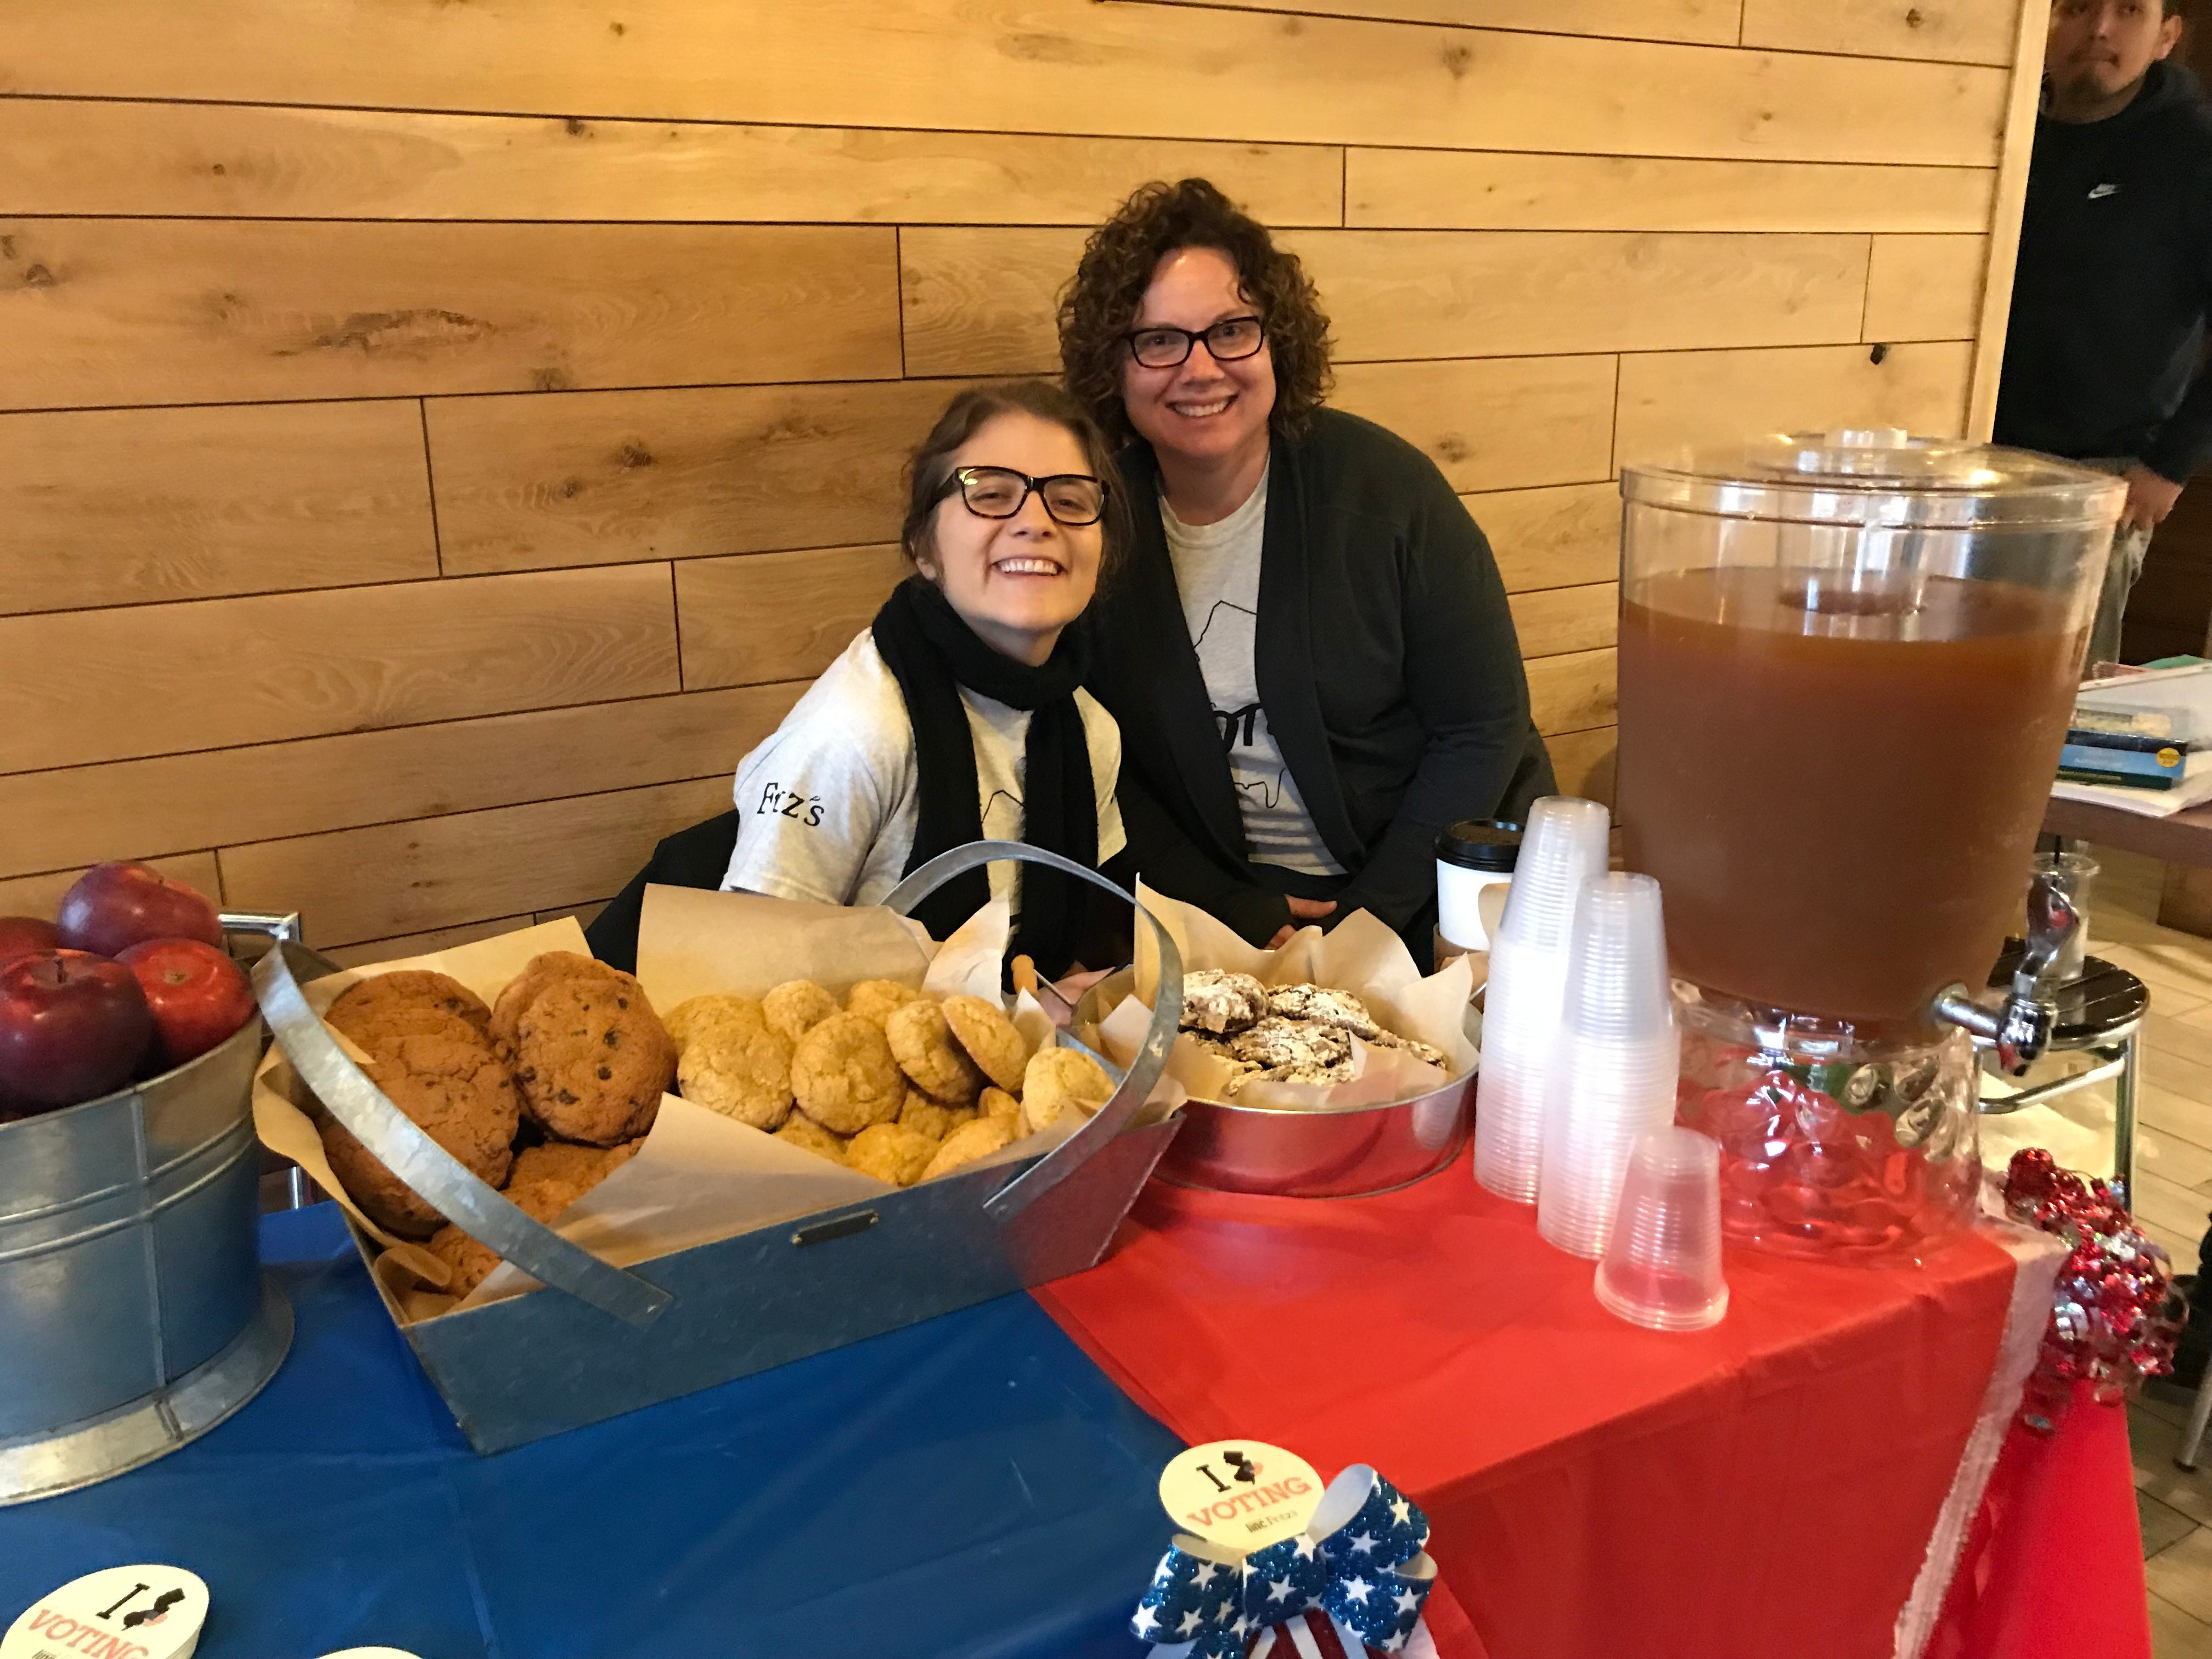 Candace Crane, Director of Community Impact, and Catherine Henderson, Early Learning Coordinator, served up cider, cookies and apples at the Voting Party hosted by the United Way of Central Jersey in New Brunswick.